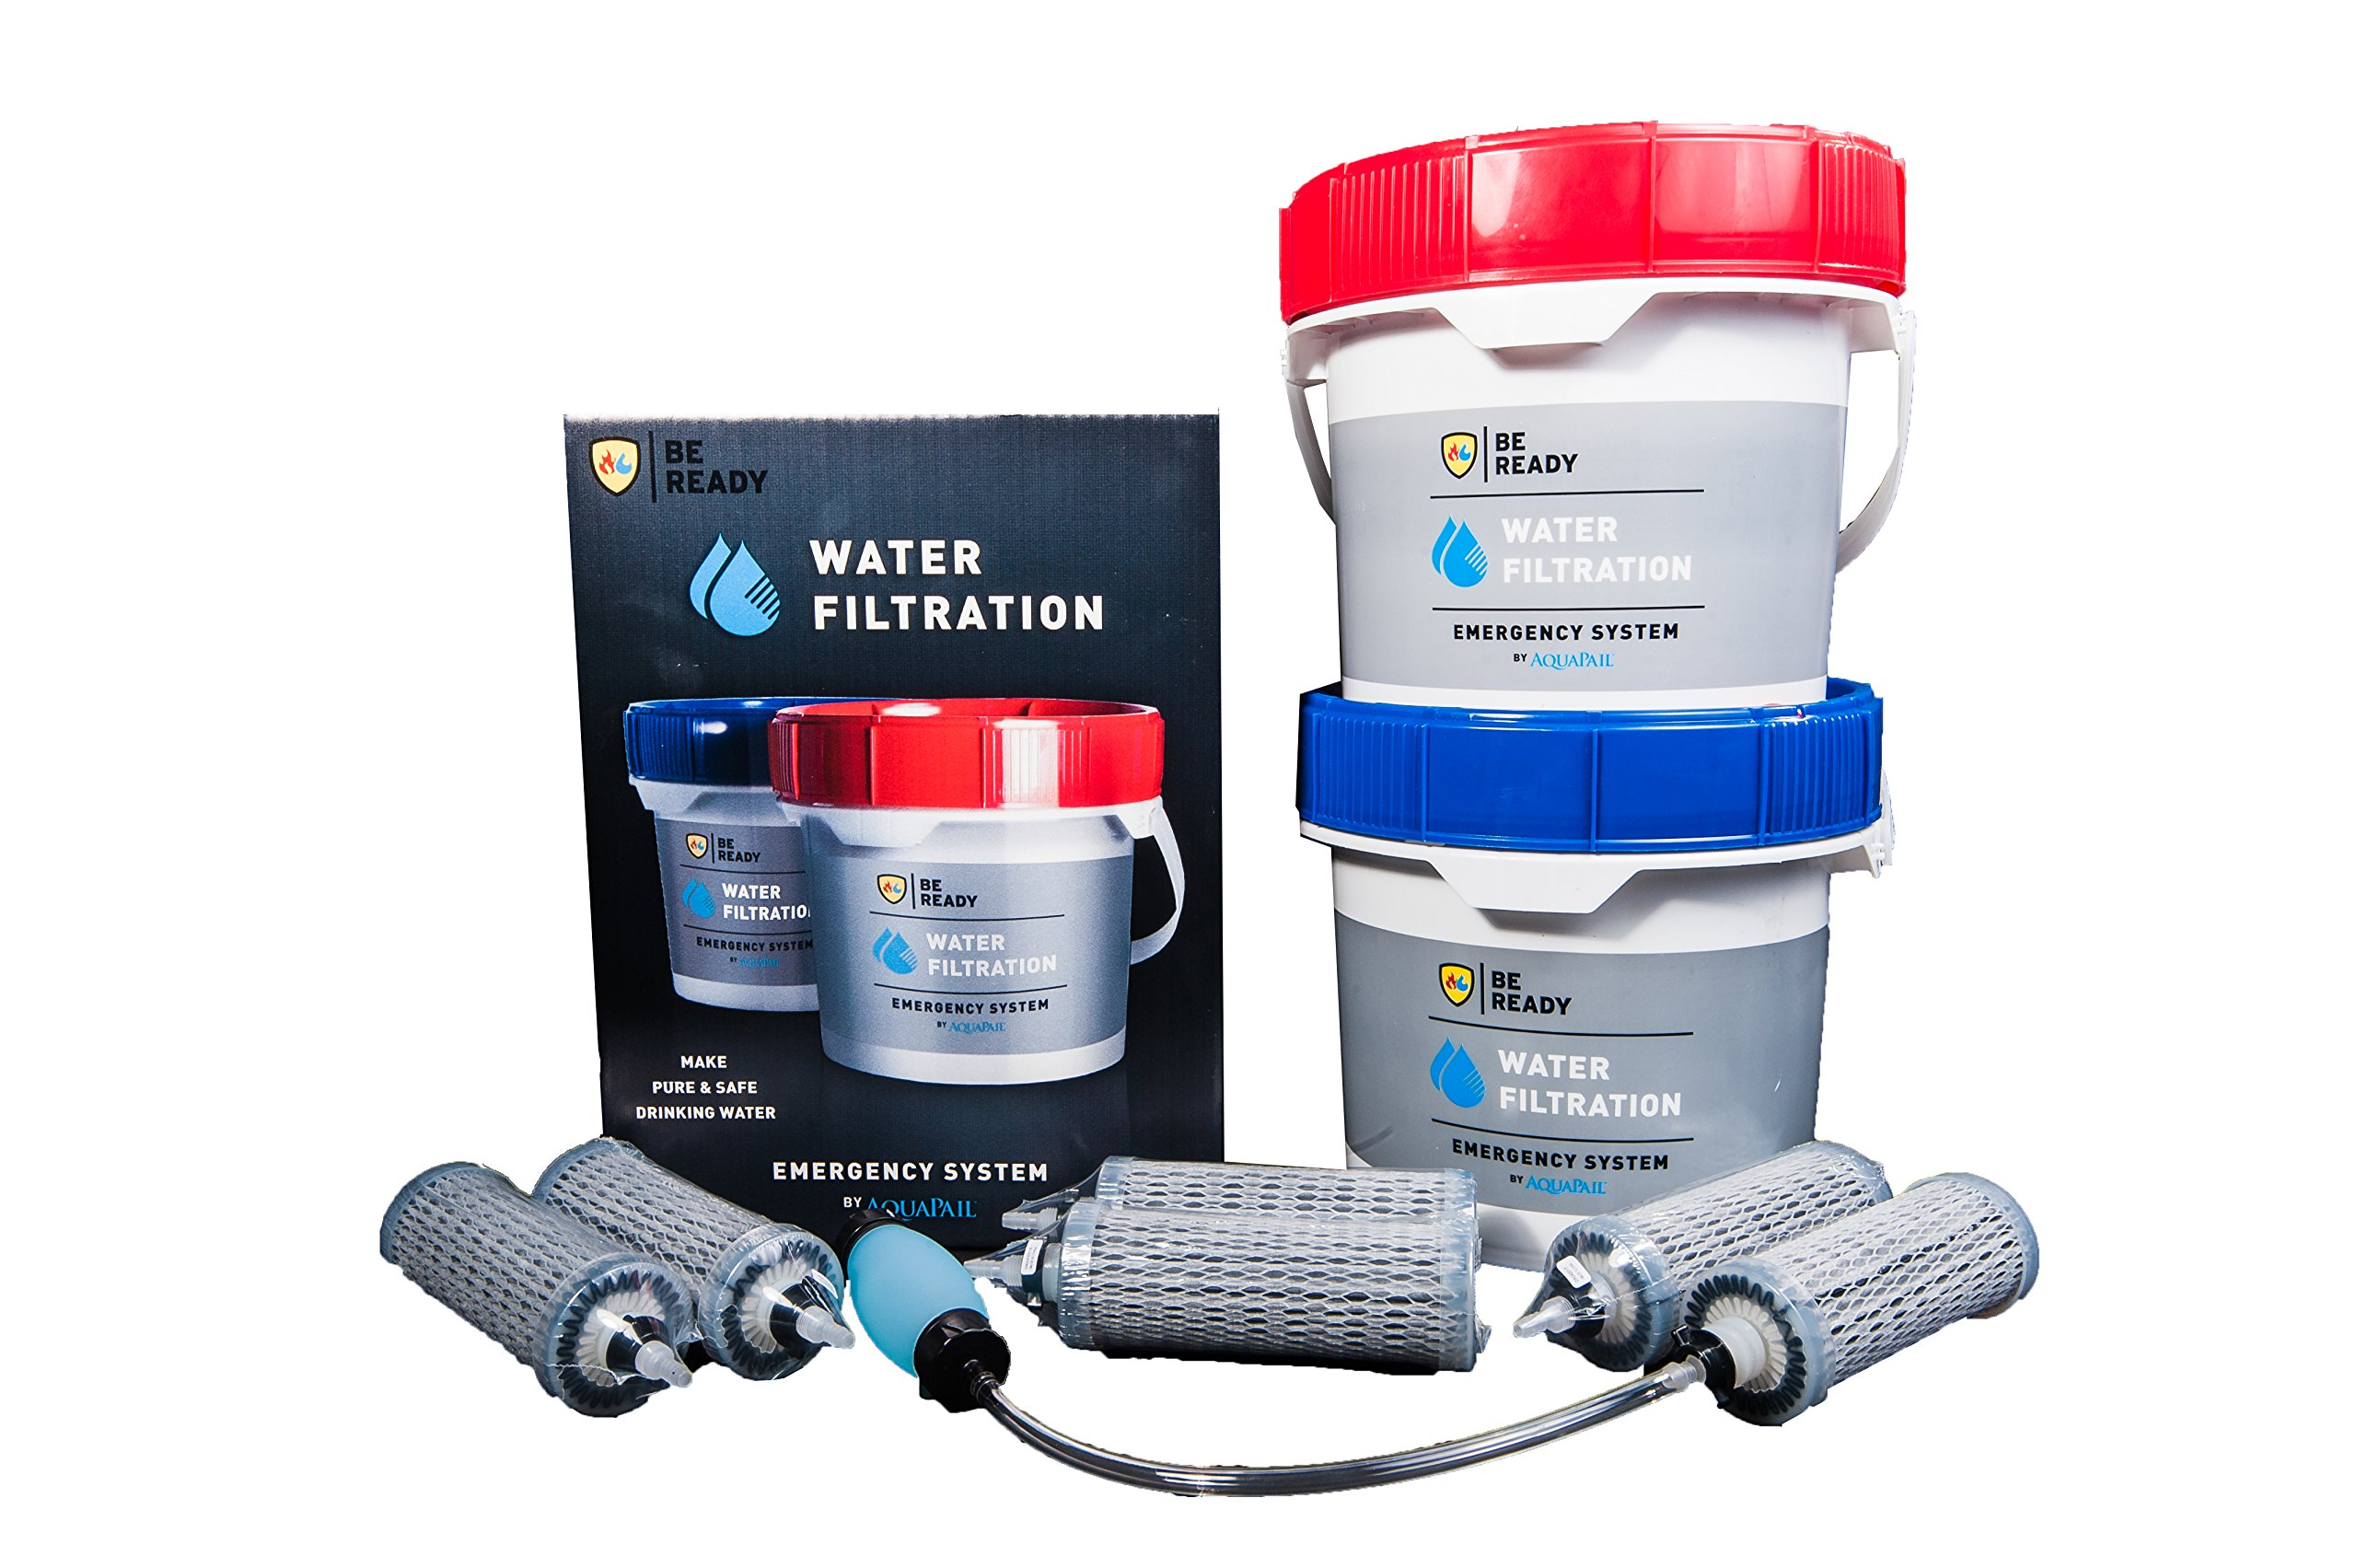 Aquapail - Gravity-fed water filter, 3,300 gallons